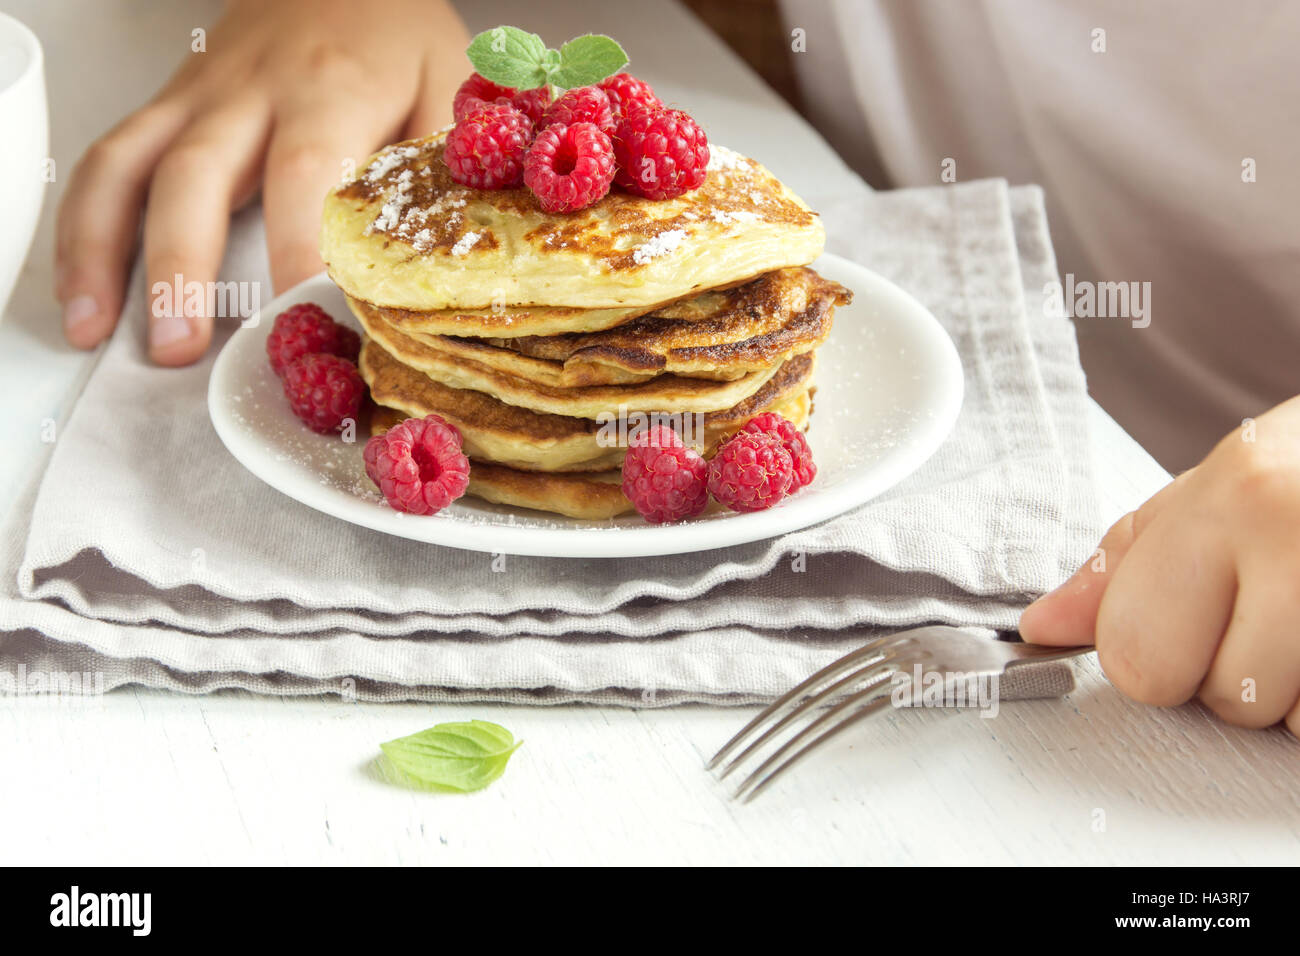 Child eating healthy breakfast at home - pancakes with raspberries on plate with children hands - Stock Image